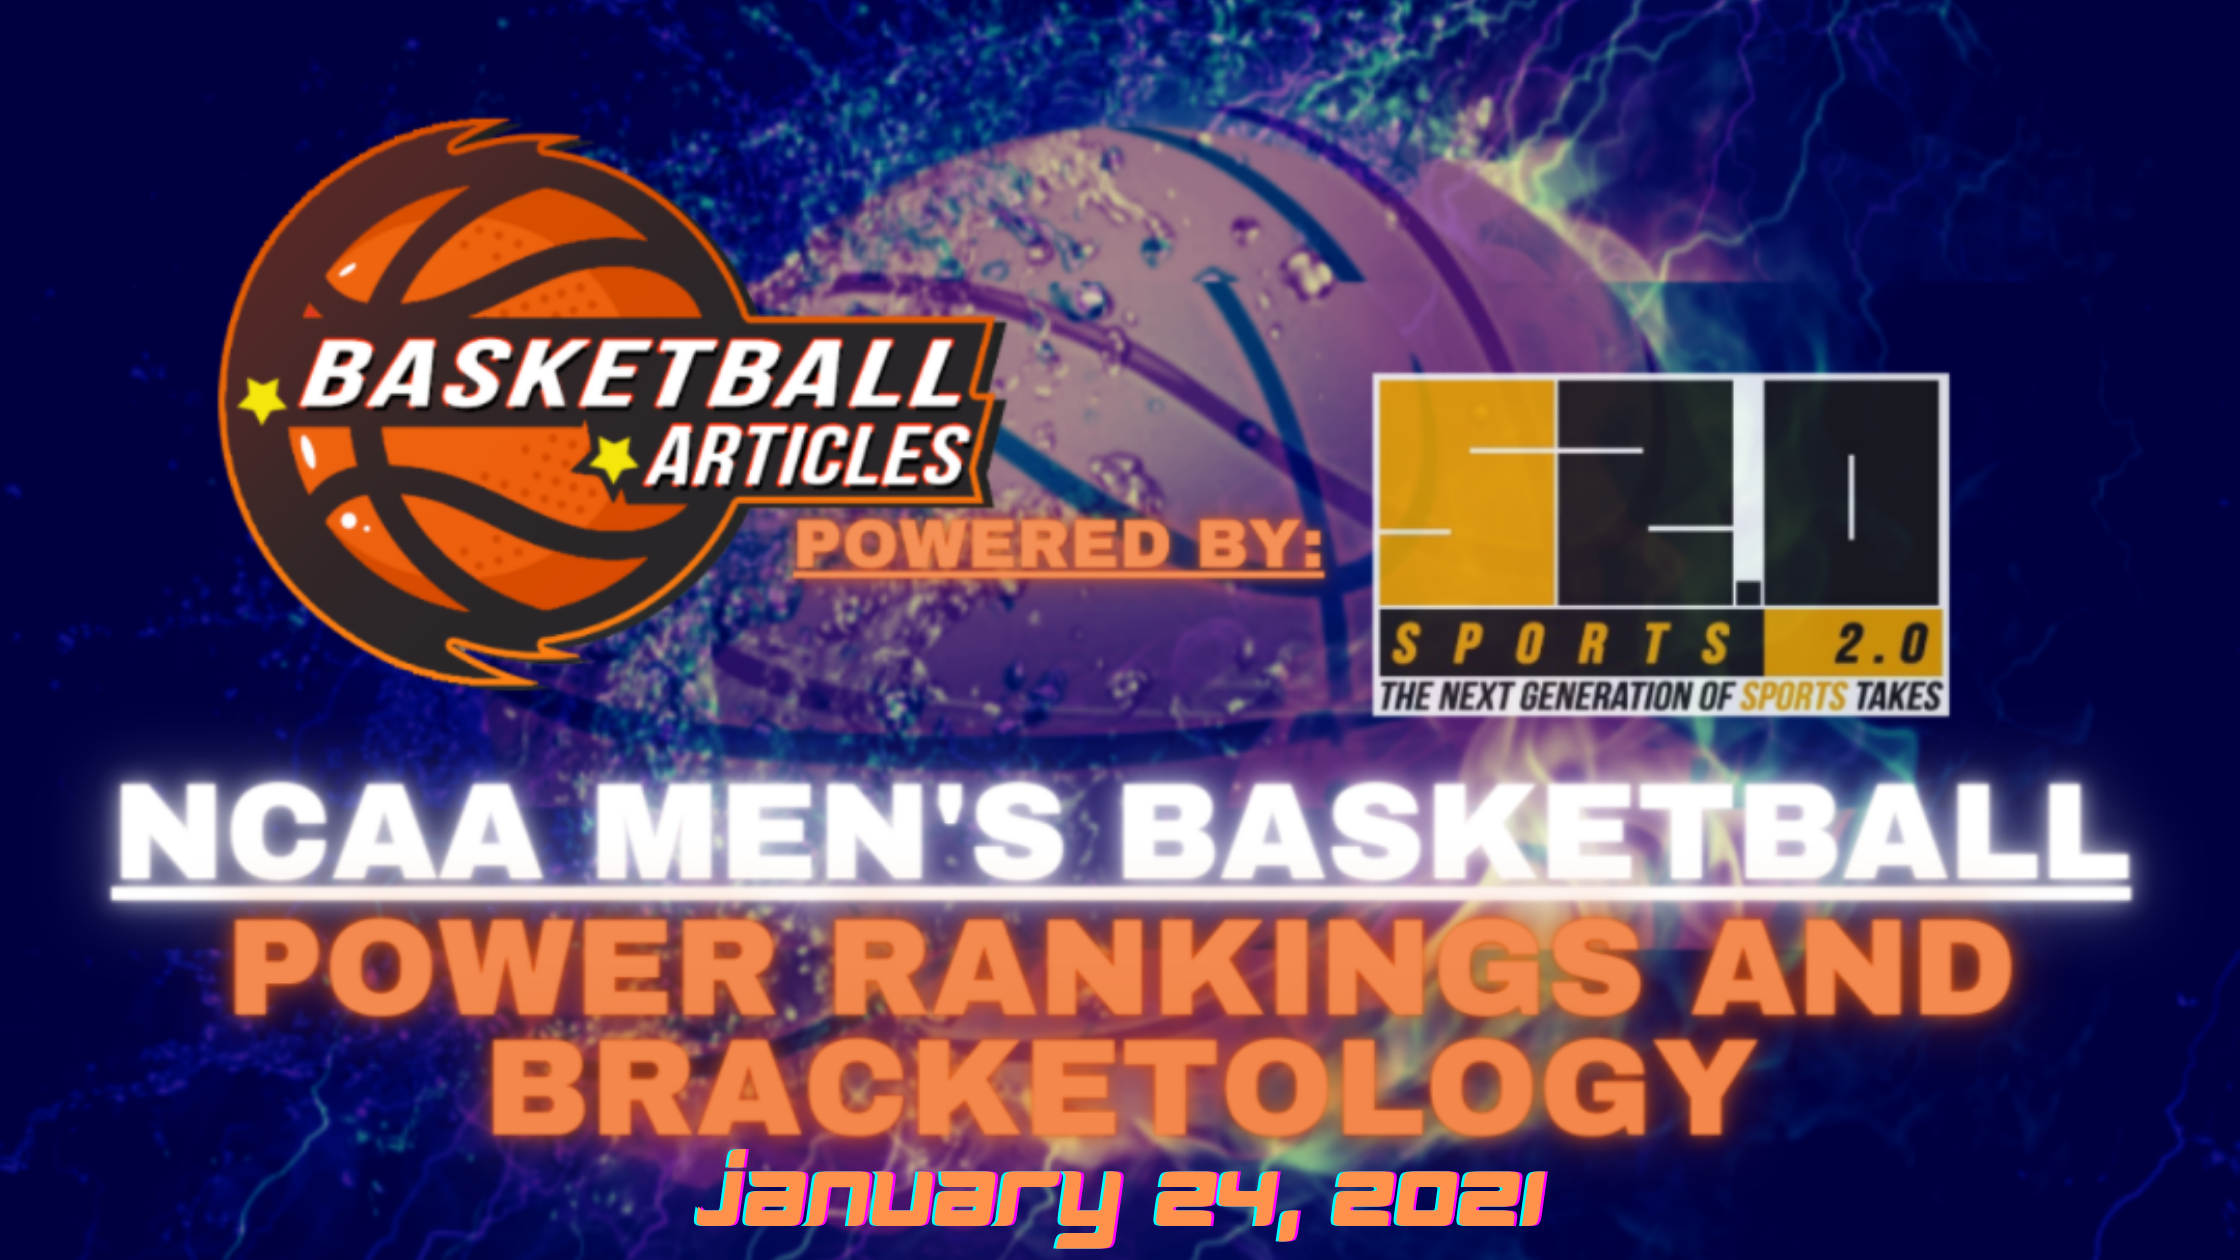 basketball power rankings and bracketology 01.24.21